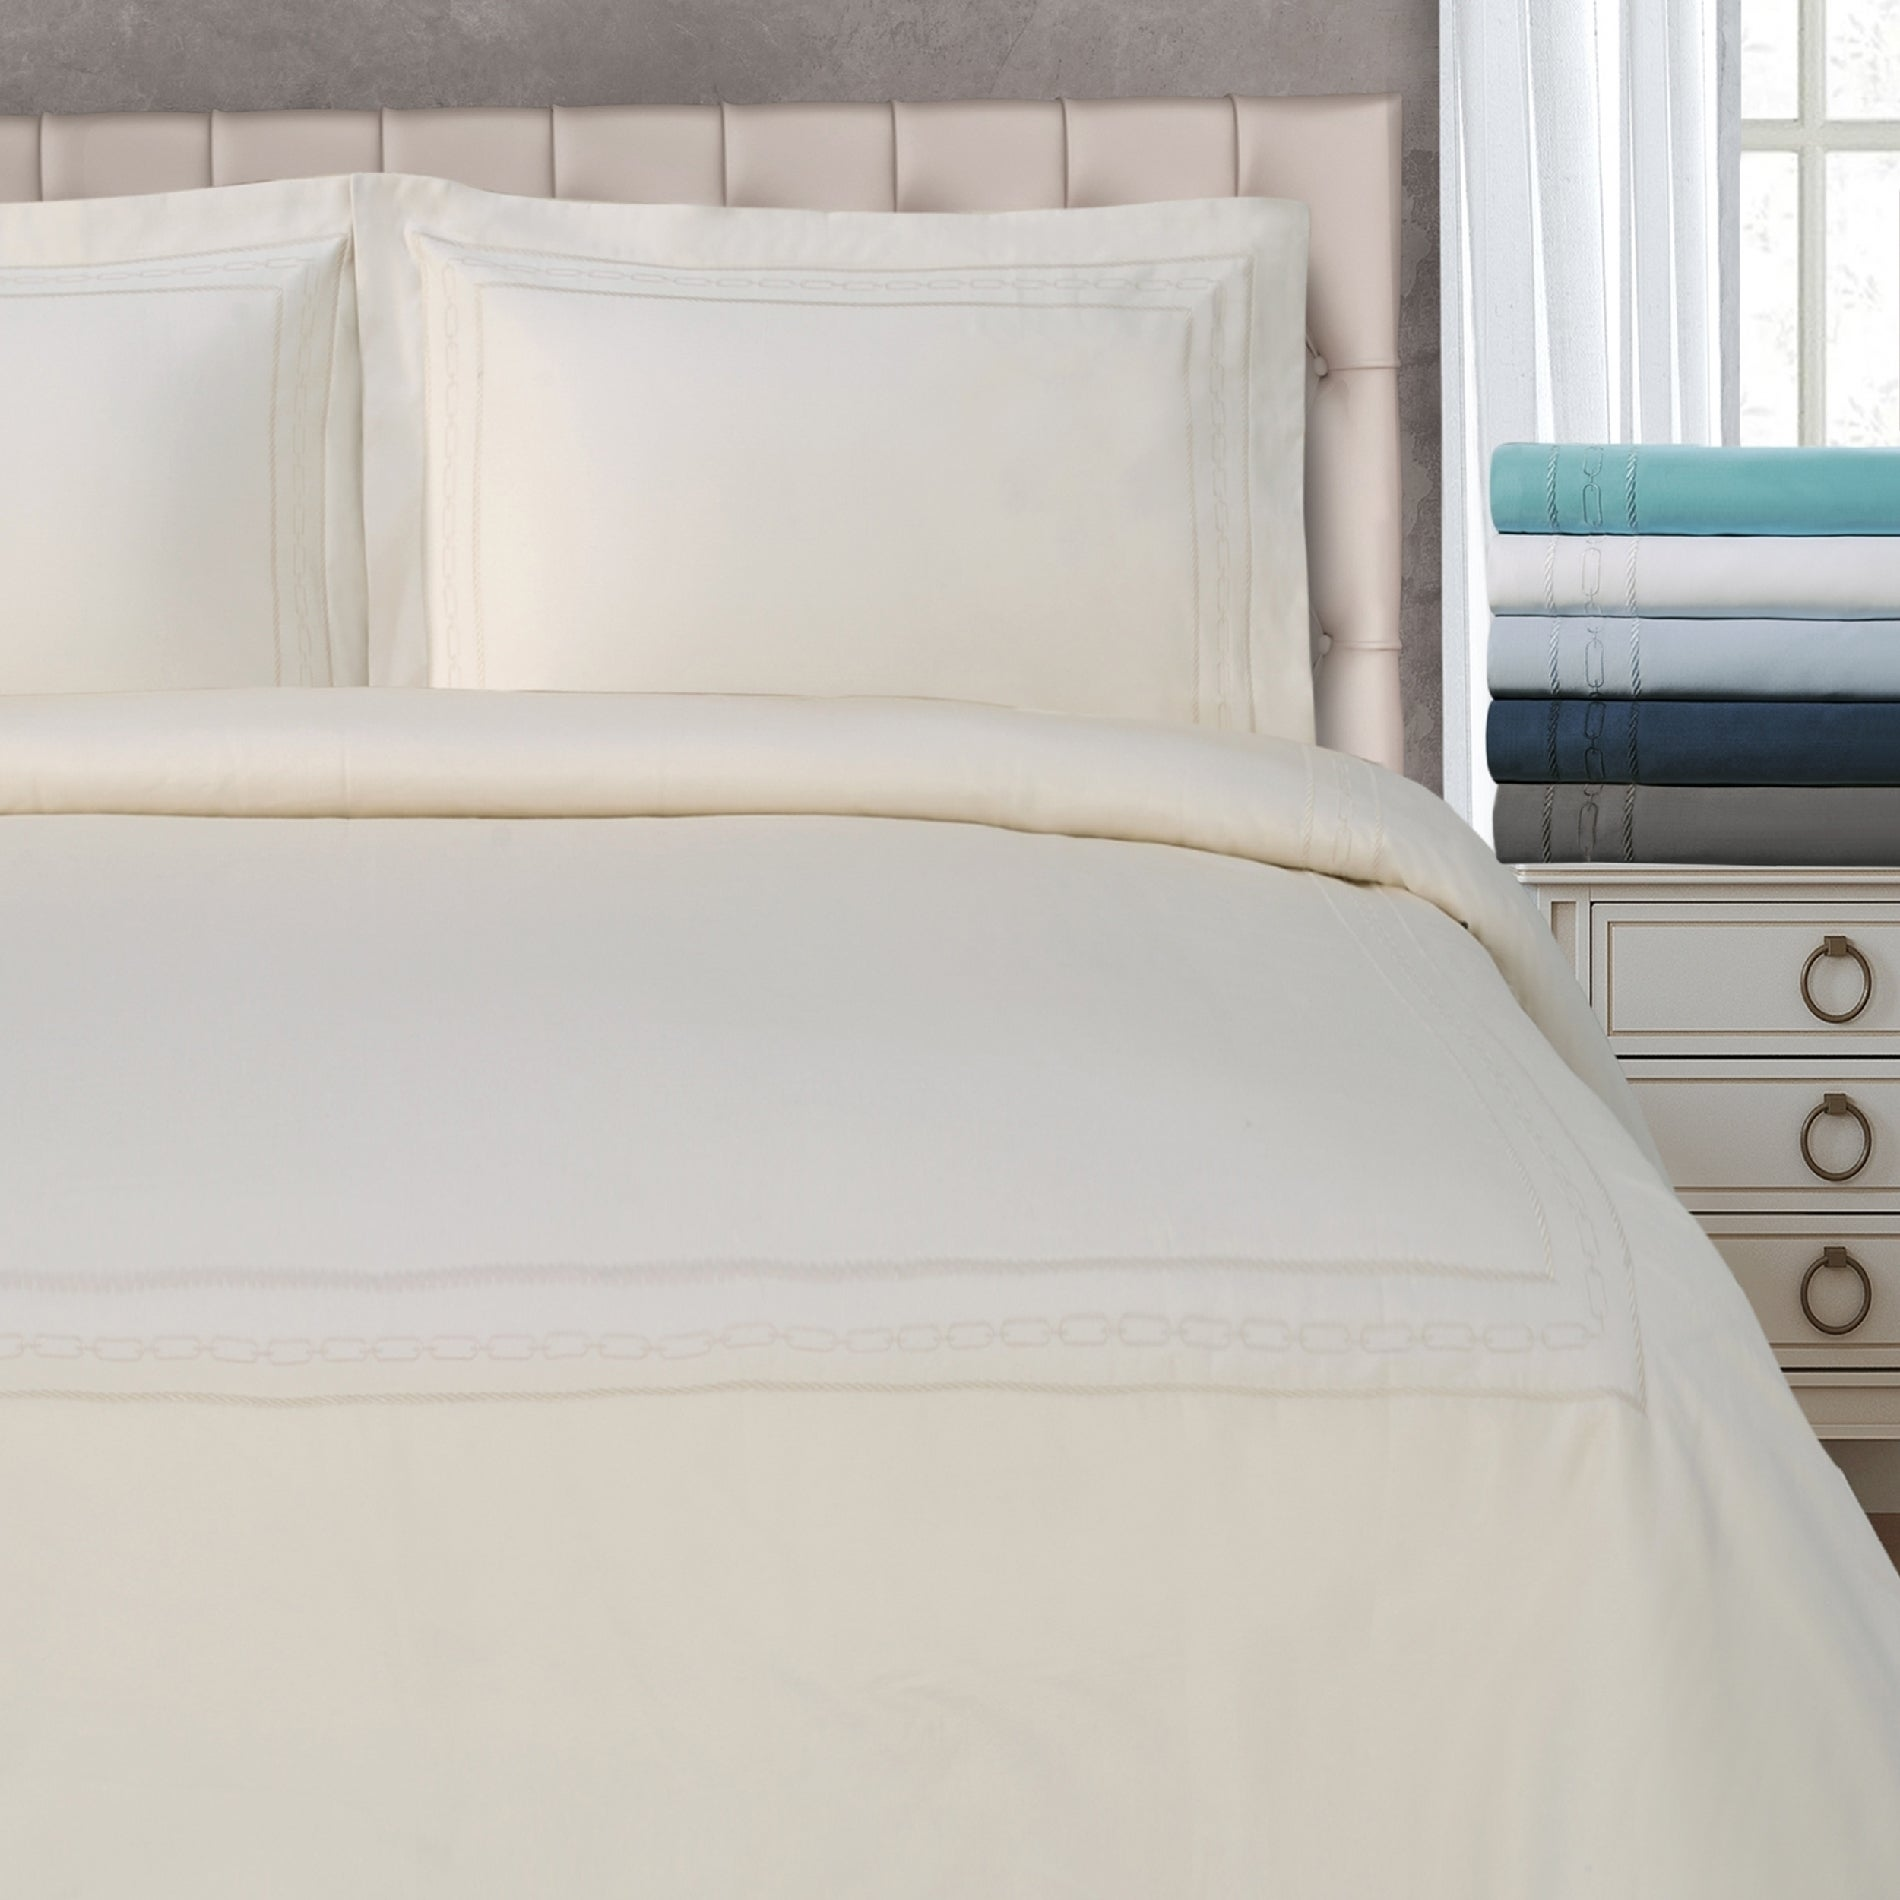 1500 Thread Count Duvet Cover Sets White Striped All Sizes Egyptian Cotton